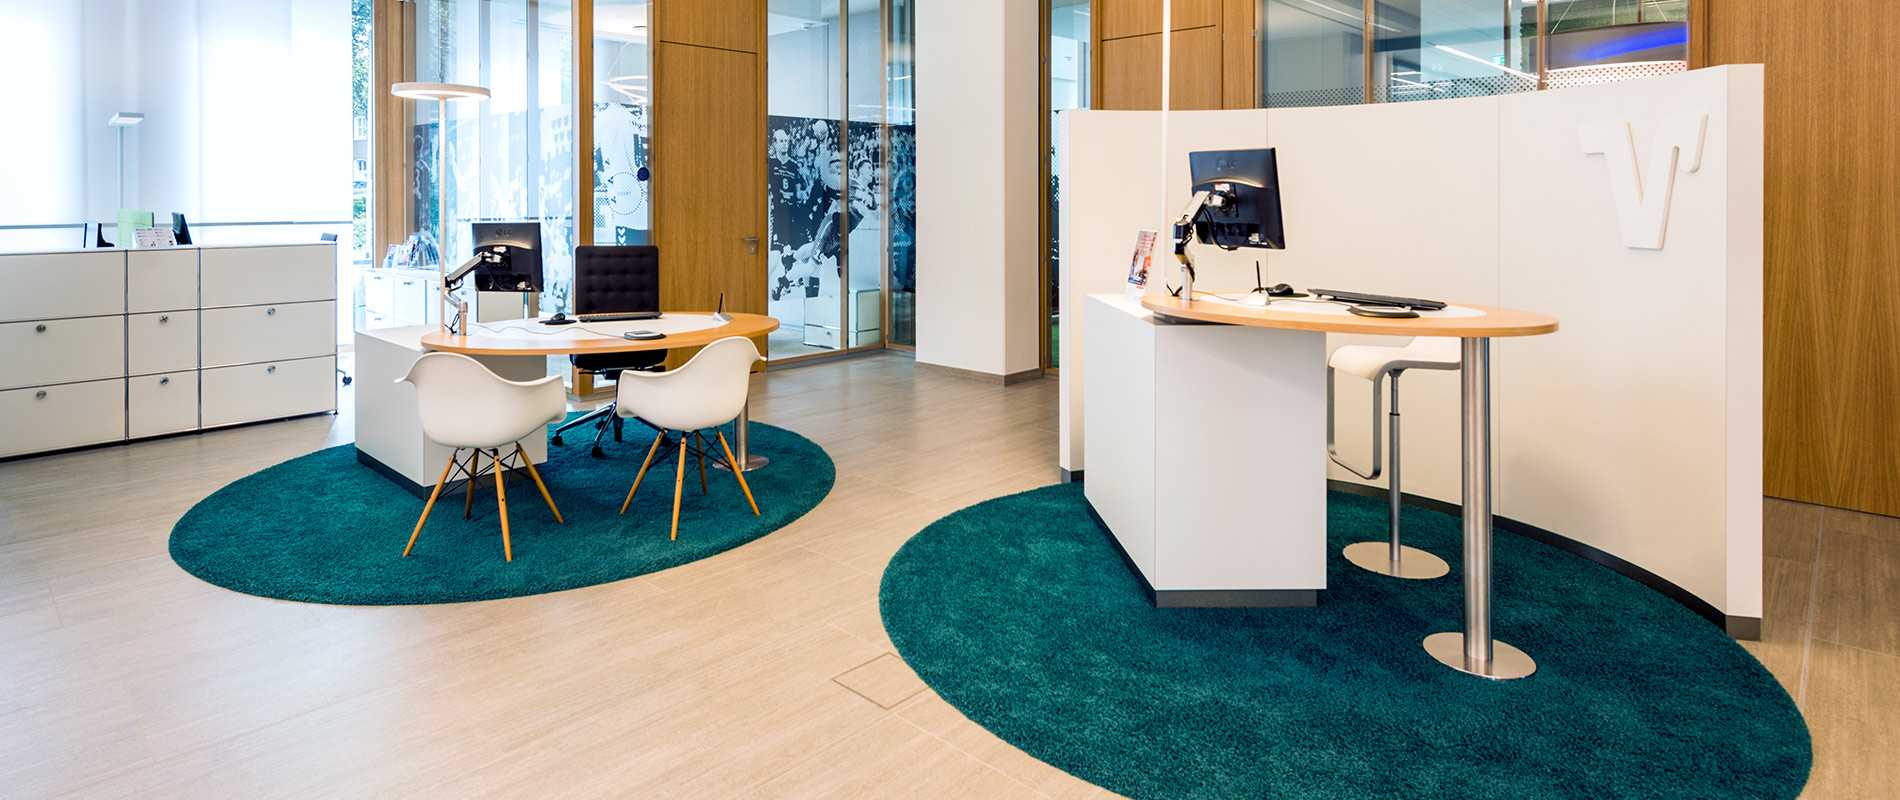 Volksbank Service Empfang Meetingpoint